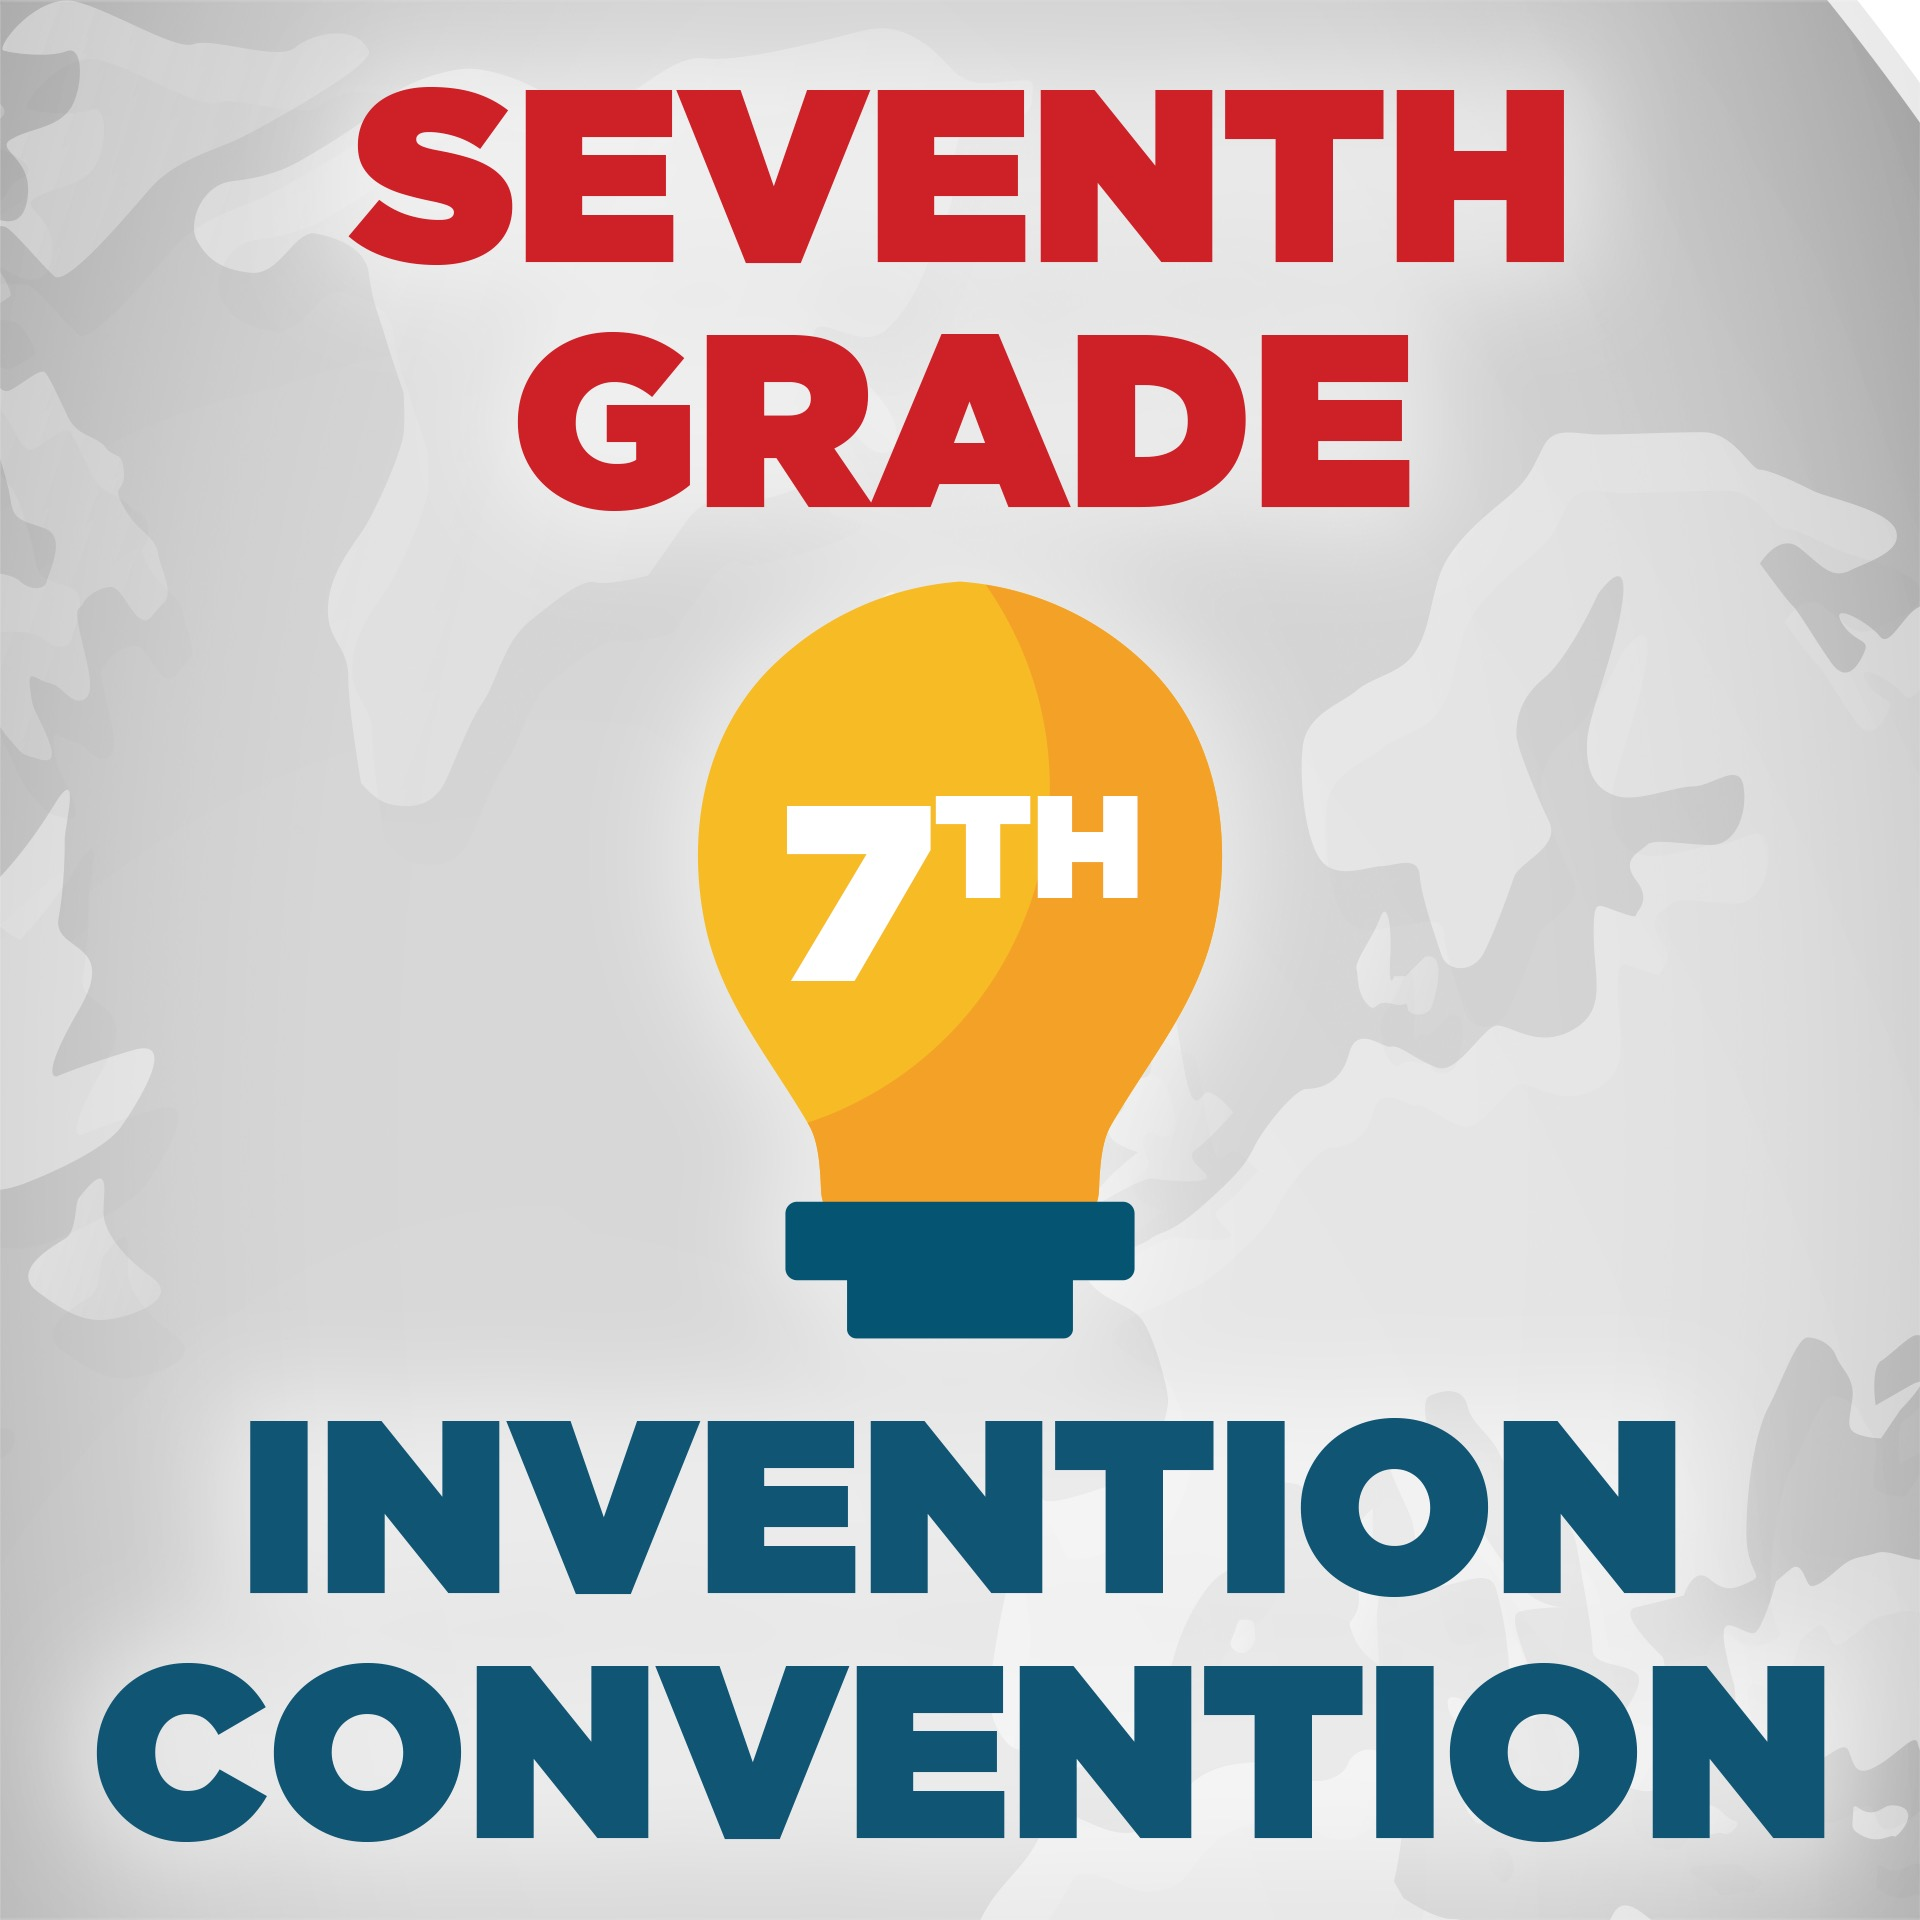 7th Invention Convention